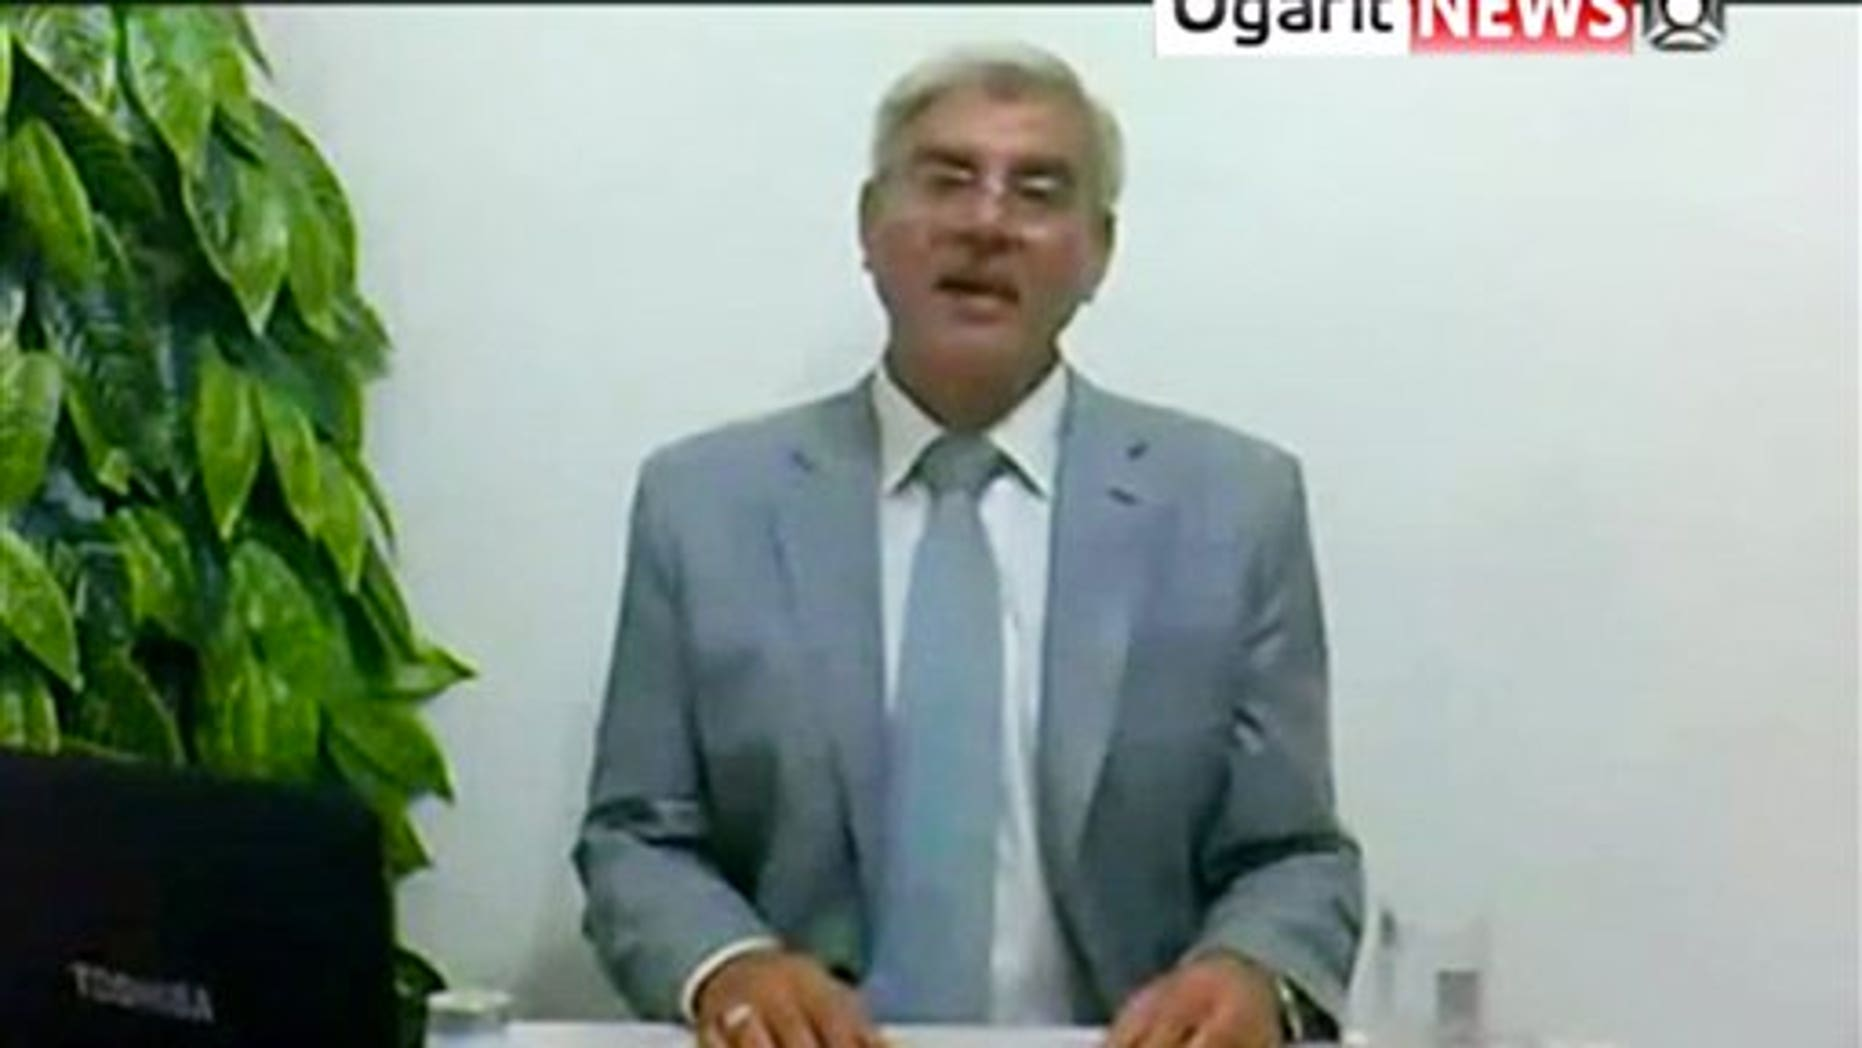 "September 1: Syrian attorney general for the central Hama province of Syria, Adnan Bakkour appears on a video posted online declaring his resignation to protest at what he said was President Bashar Assad's crackdown on a 5-month-old uprising, saying security forces killed hundreds of people in the restive city of Hama and arrested thousands of ""peaceful protesters."" The state-run news agency said Thursday that ""terrorists"" had kidnapped Bakkour and forced him to make the recording, although Bakkour denied this in a second video."